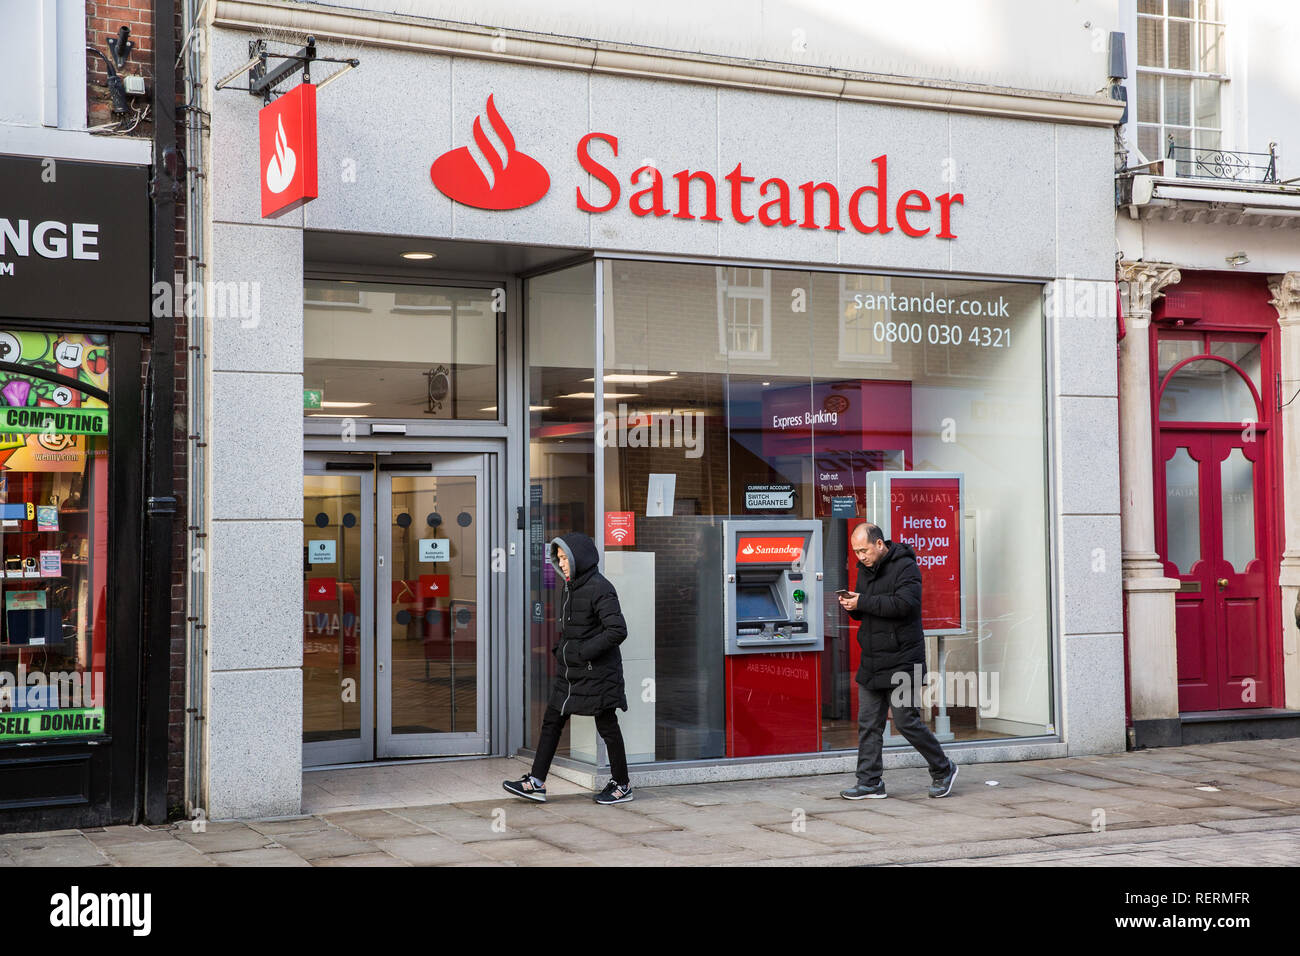 Windsor, UK. 23rd Jan, 2019. Spanish-owned bank Santander has announced that it plans to close one fifth of its branch network - around 140 branches - with the potential loss of up to 1,270 jobs. It stated that the closures are in response to changes in how customers are choosing to carry out their banking, with branch transactions having fallen 23% in the last three years. There are no plans to close this branch in Windsor. Credit: Mark Kerrison/Alamy Live News - Stock Image